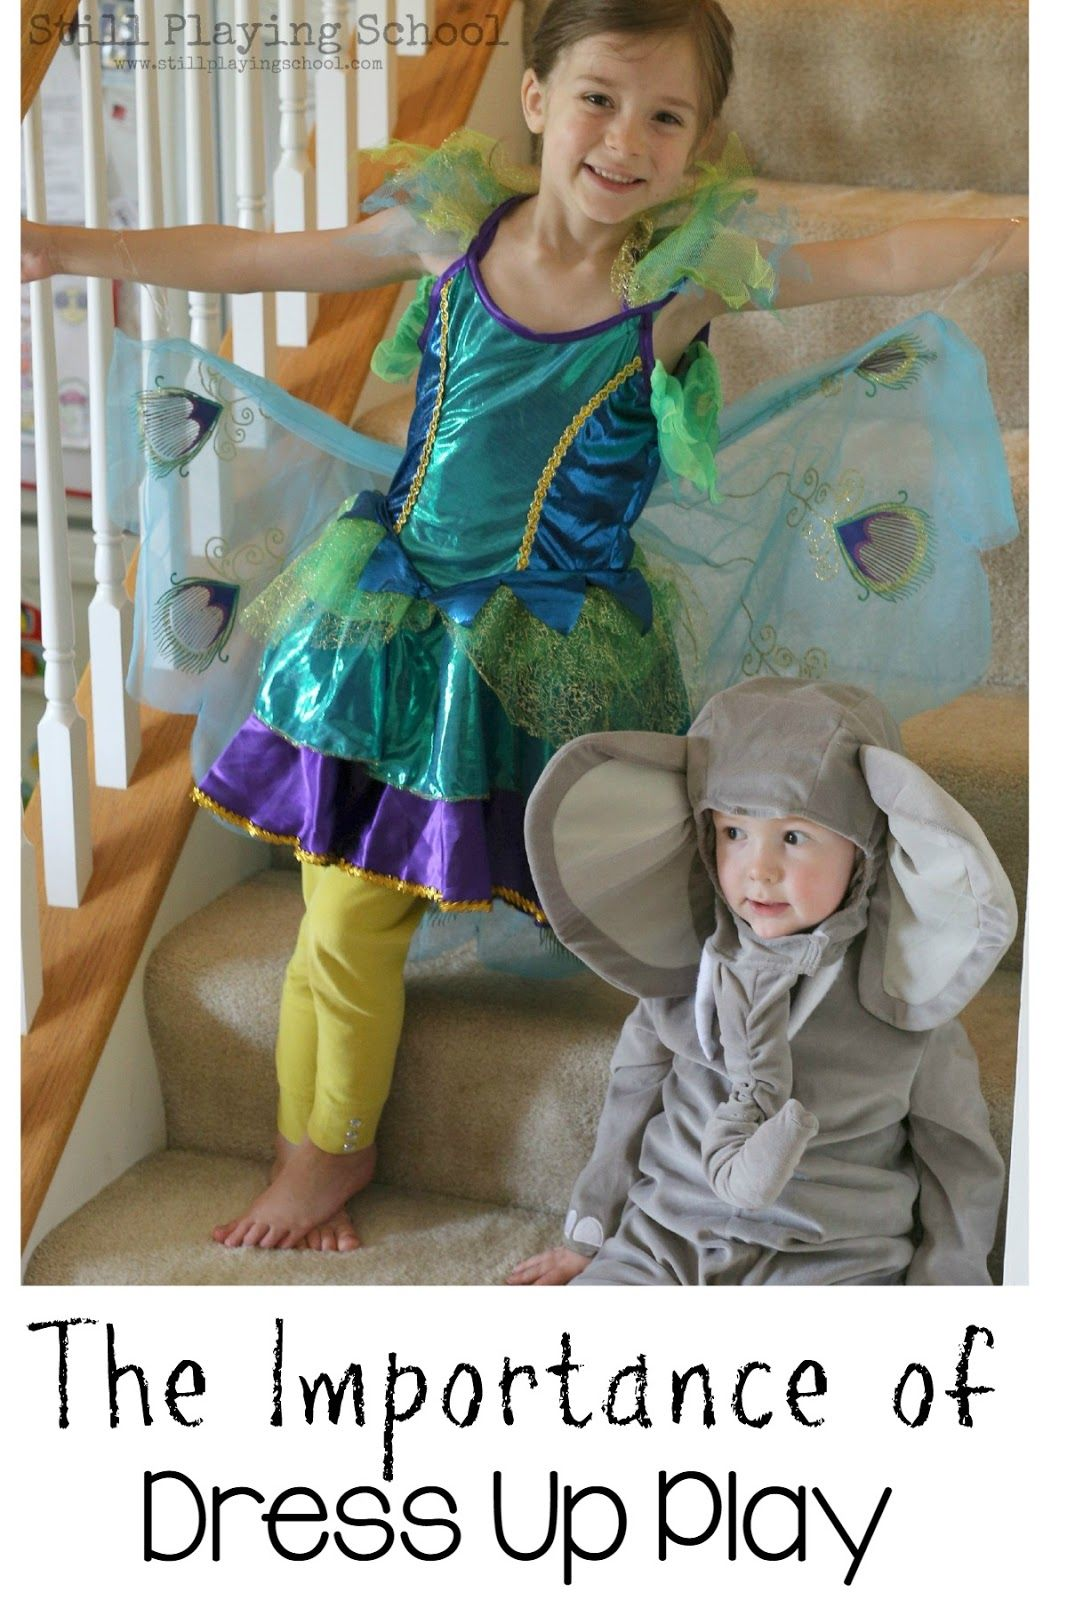 The Importance of Everyday Dress Up Play in Preschool and at Home for Kids from Still Playing School